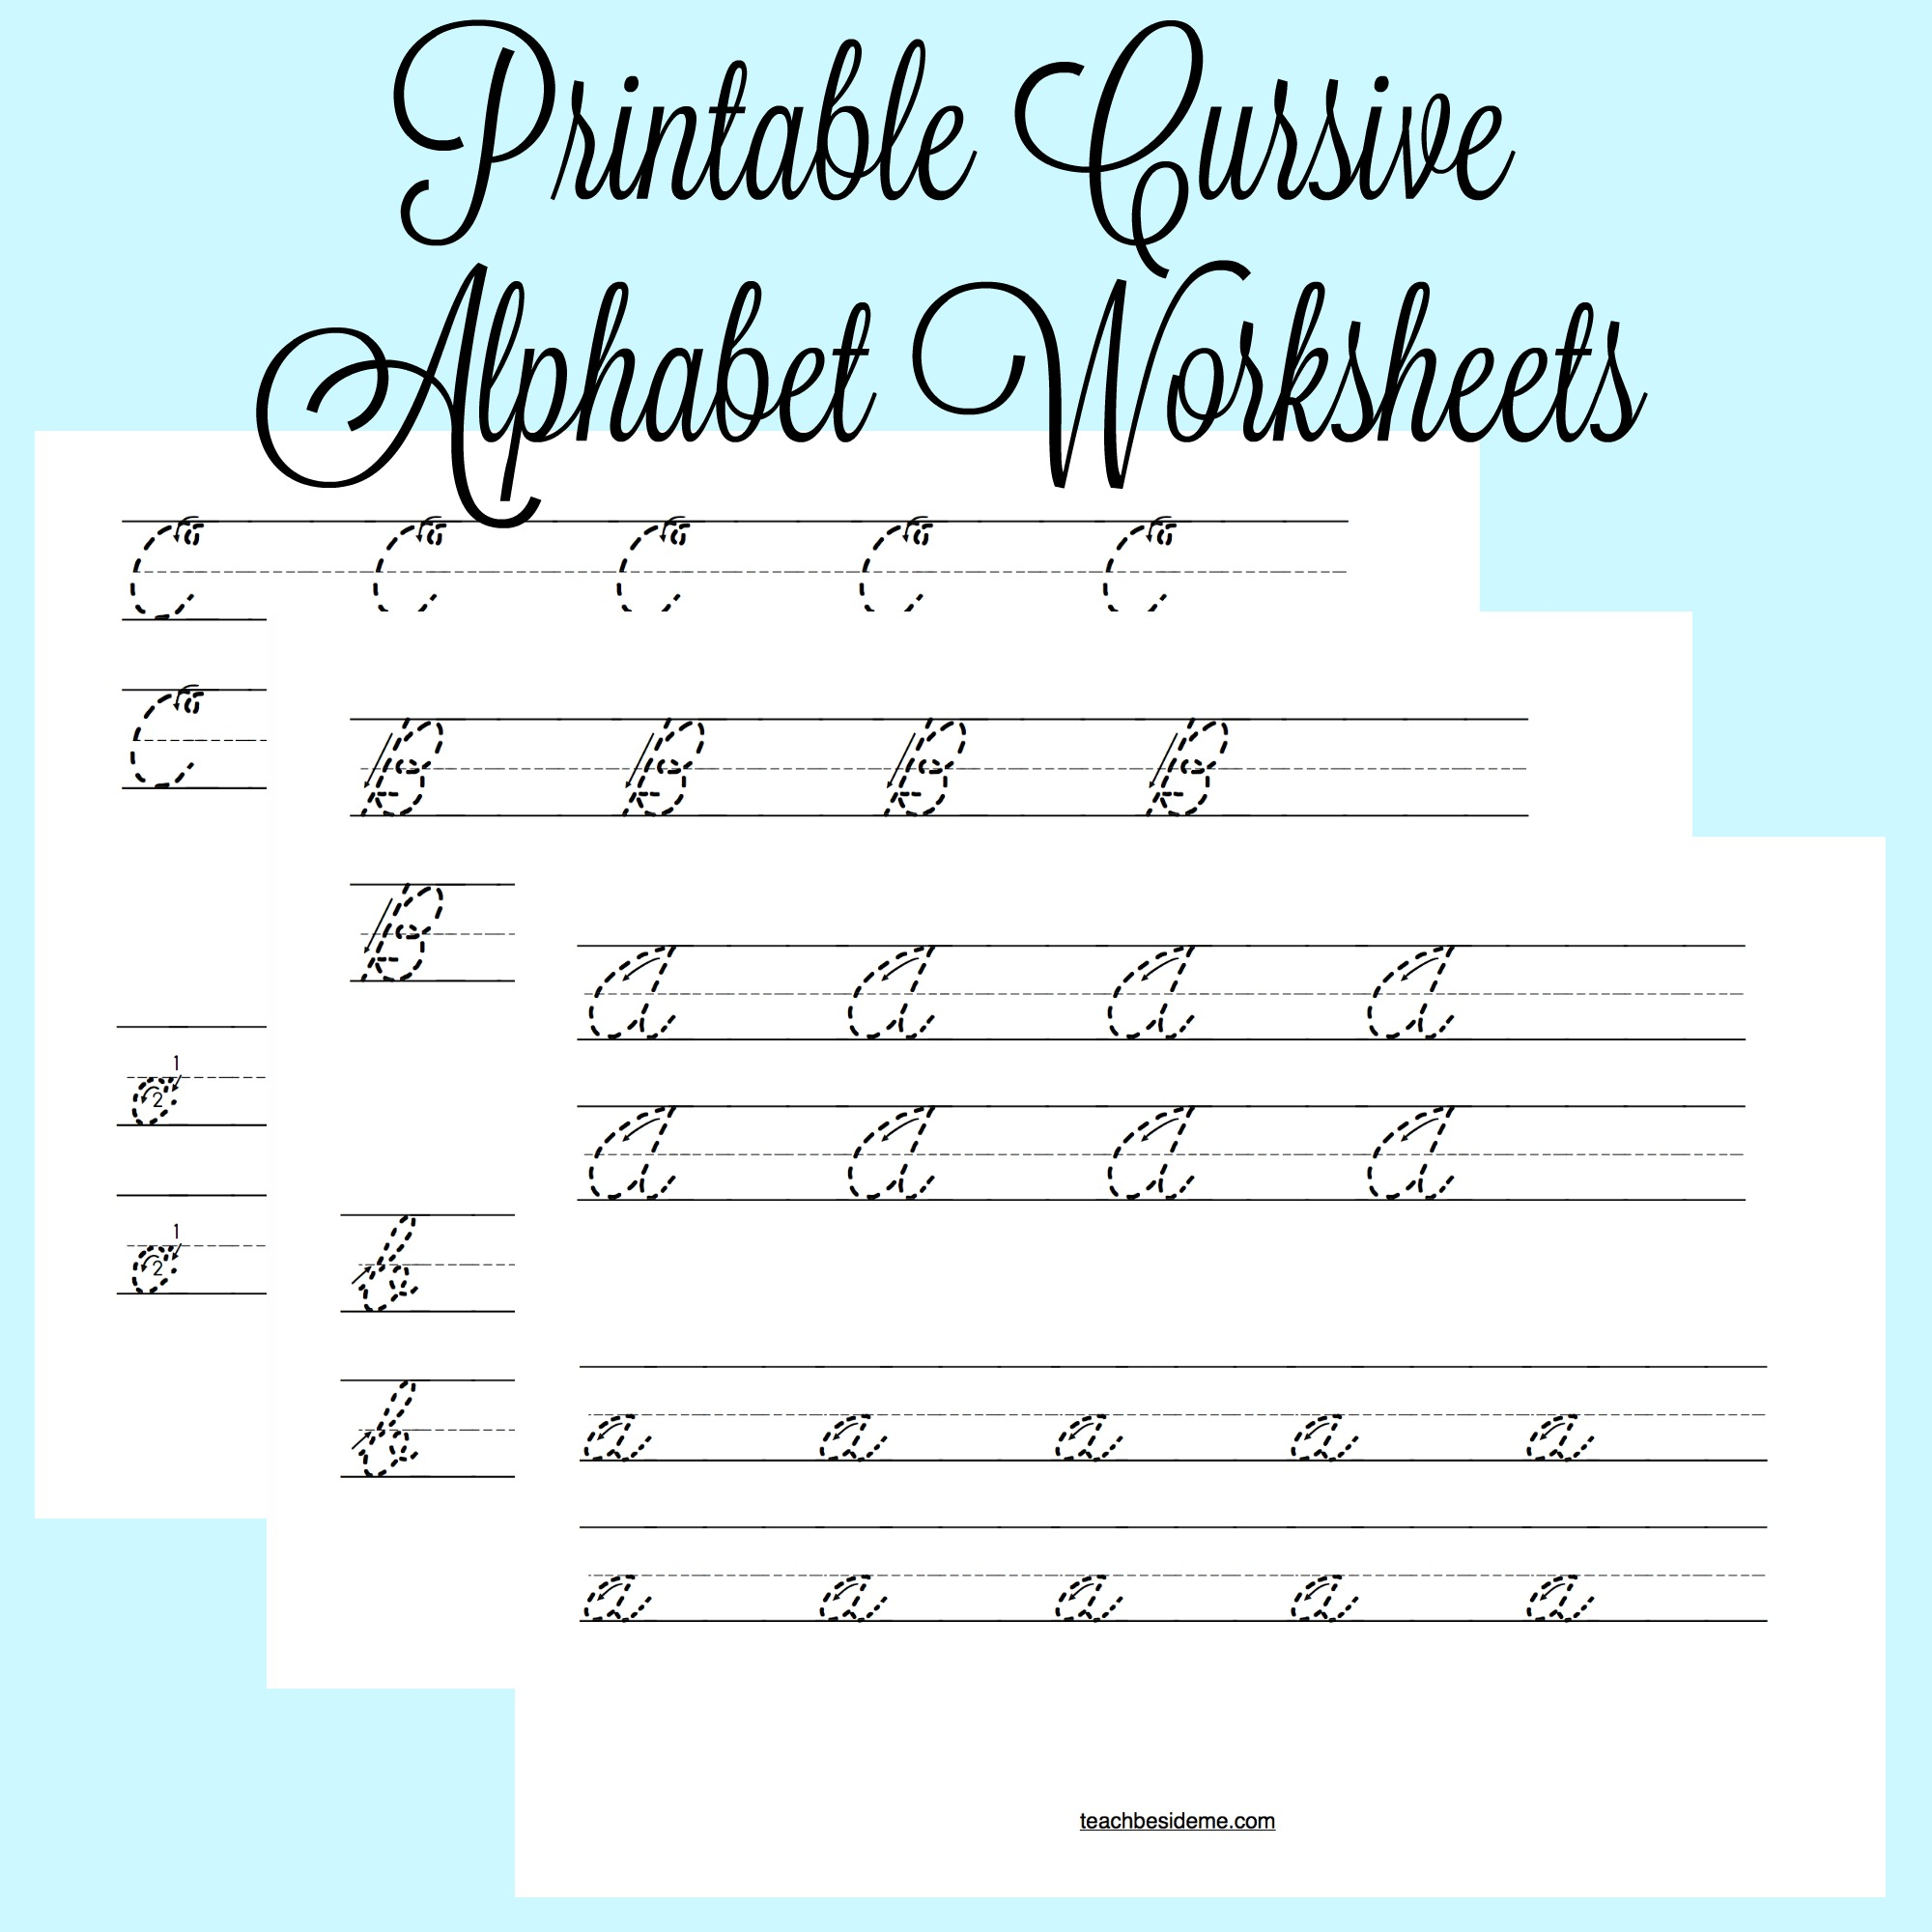 Worksheets Cursive Alphabet Worksheets cursive alphabet worksheets teach beside me